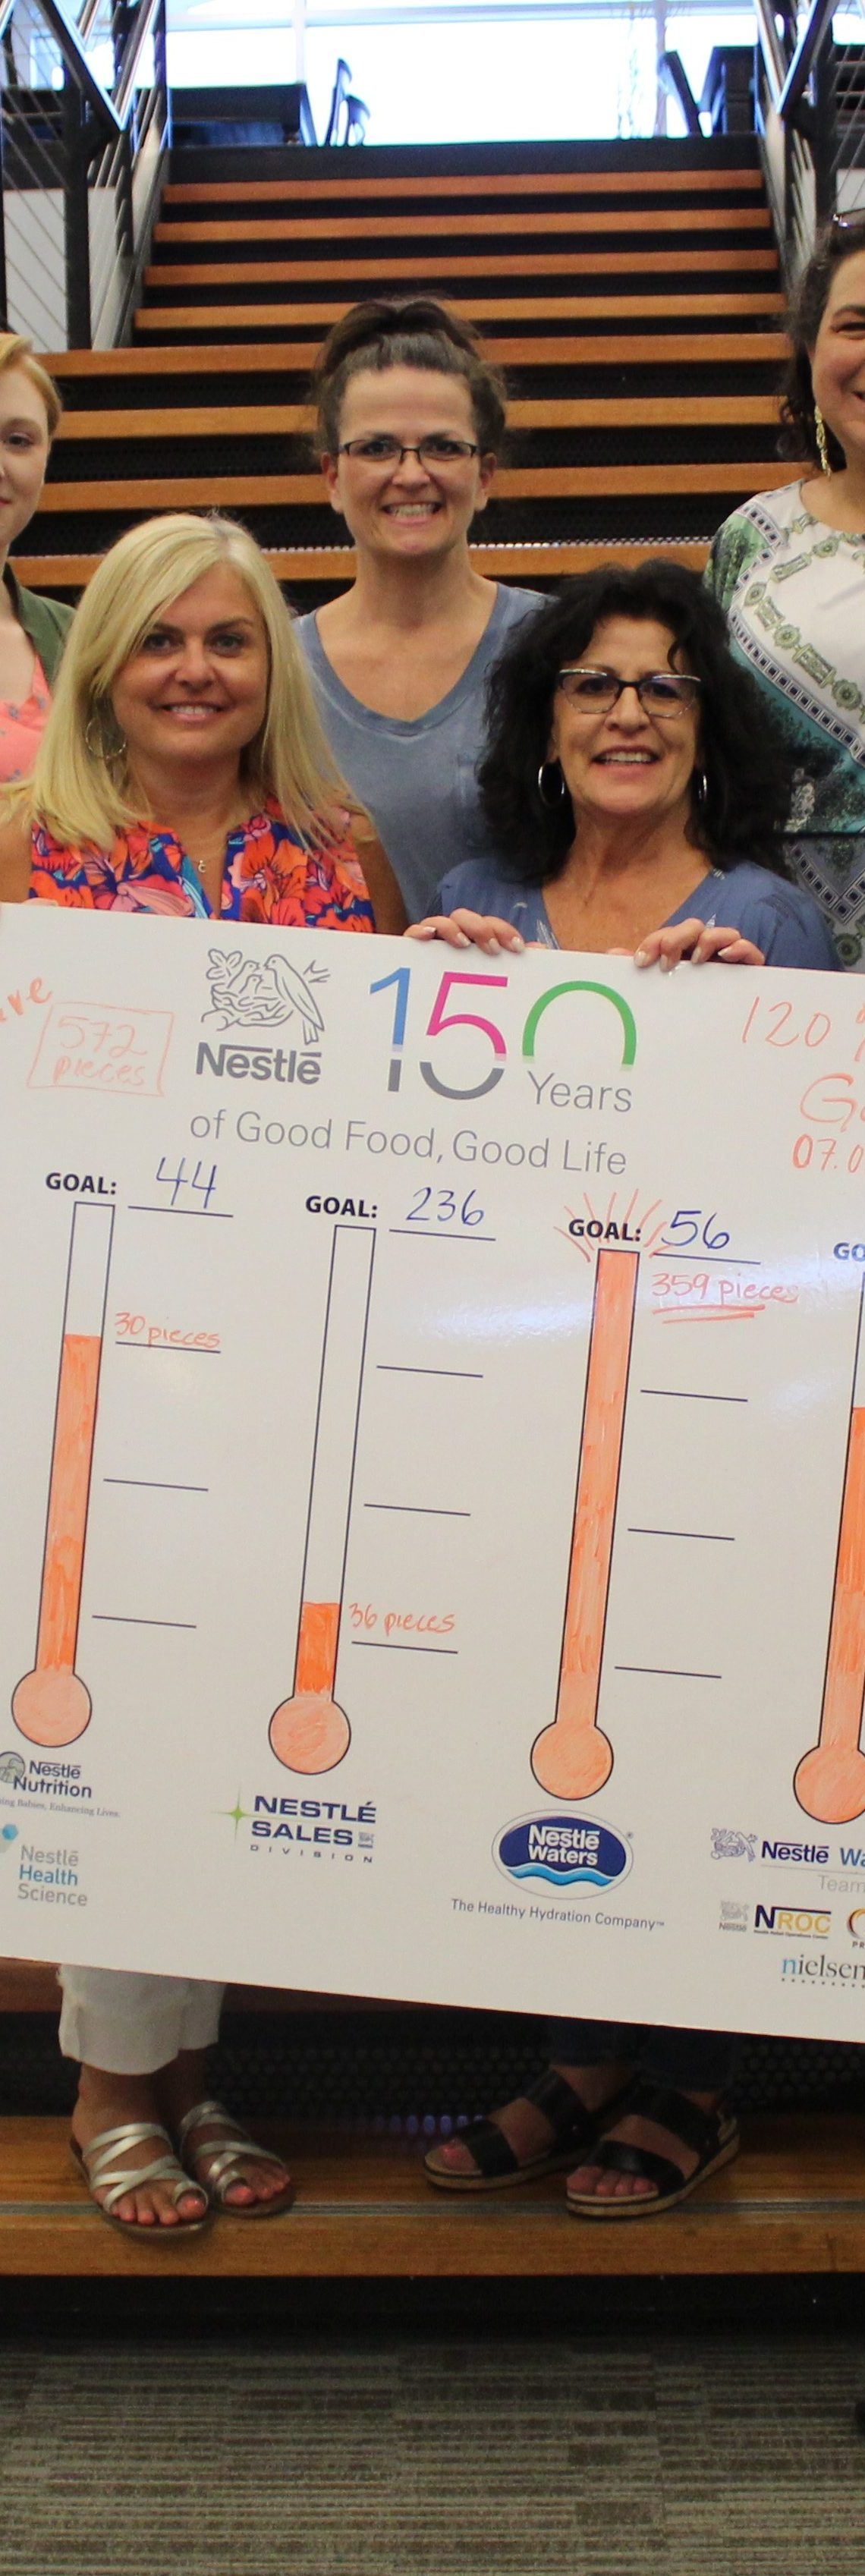 Nestlé donates to NWA Food Bank to kick off company's upcoming National Day of Service on Aug. 2